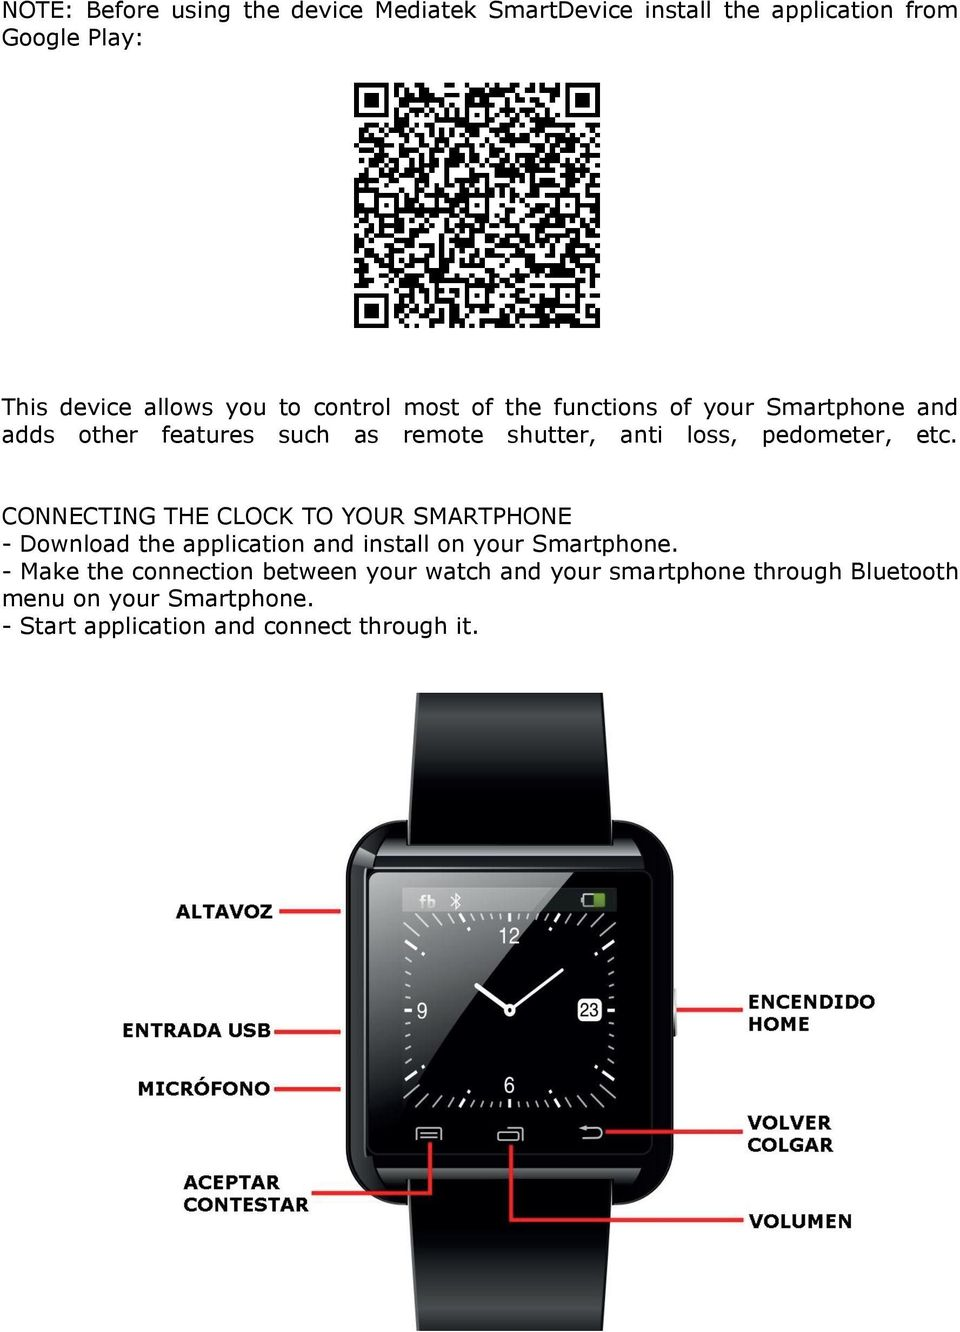 CONNECTING THE CLOCK TO YOUR SMARTPHONE - Download the application and install on your Smartphone.